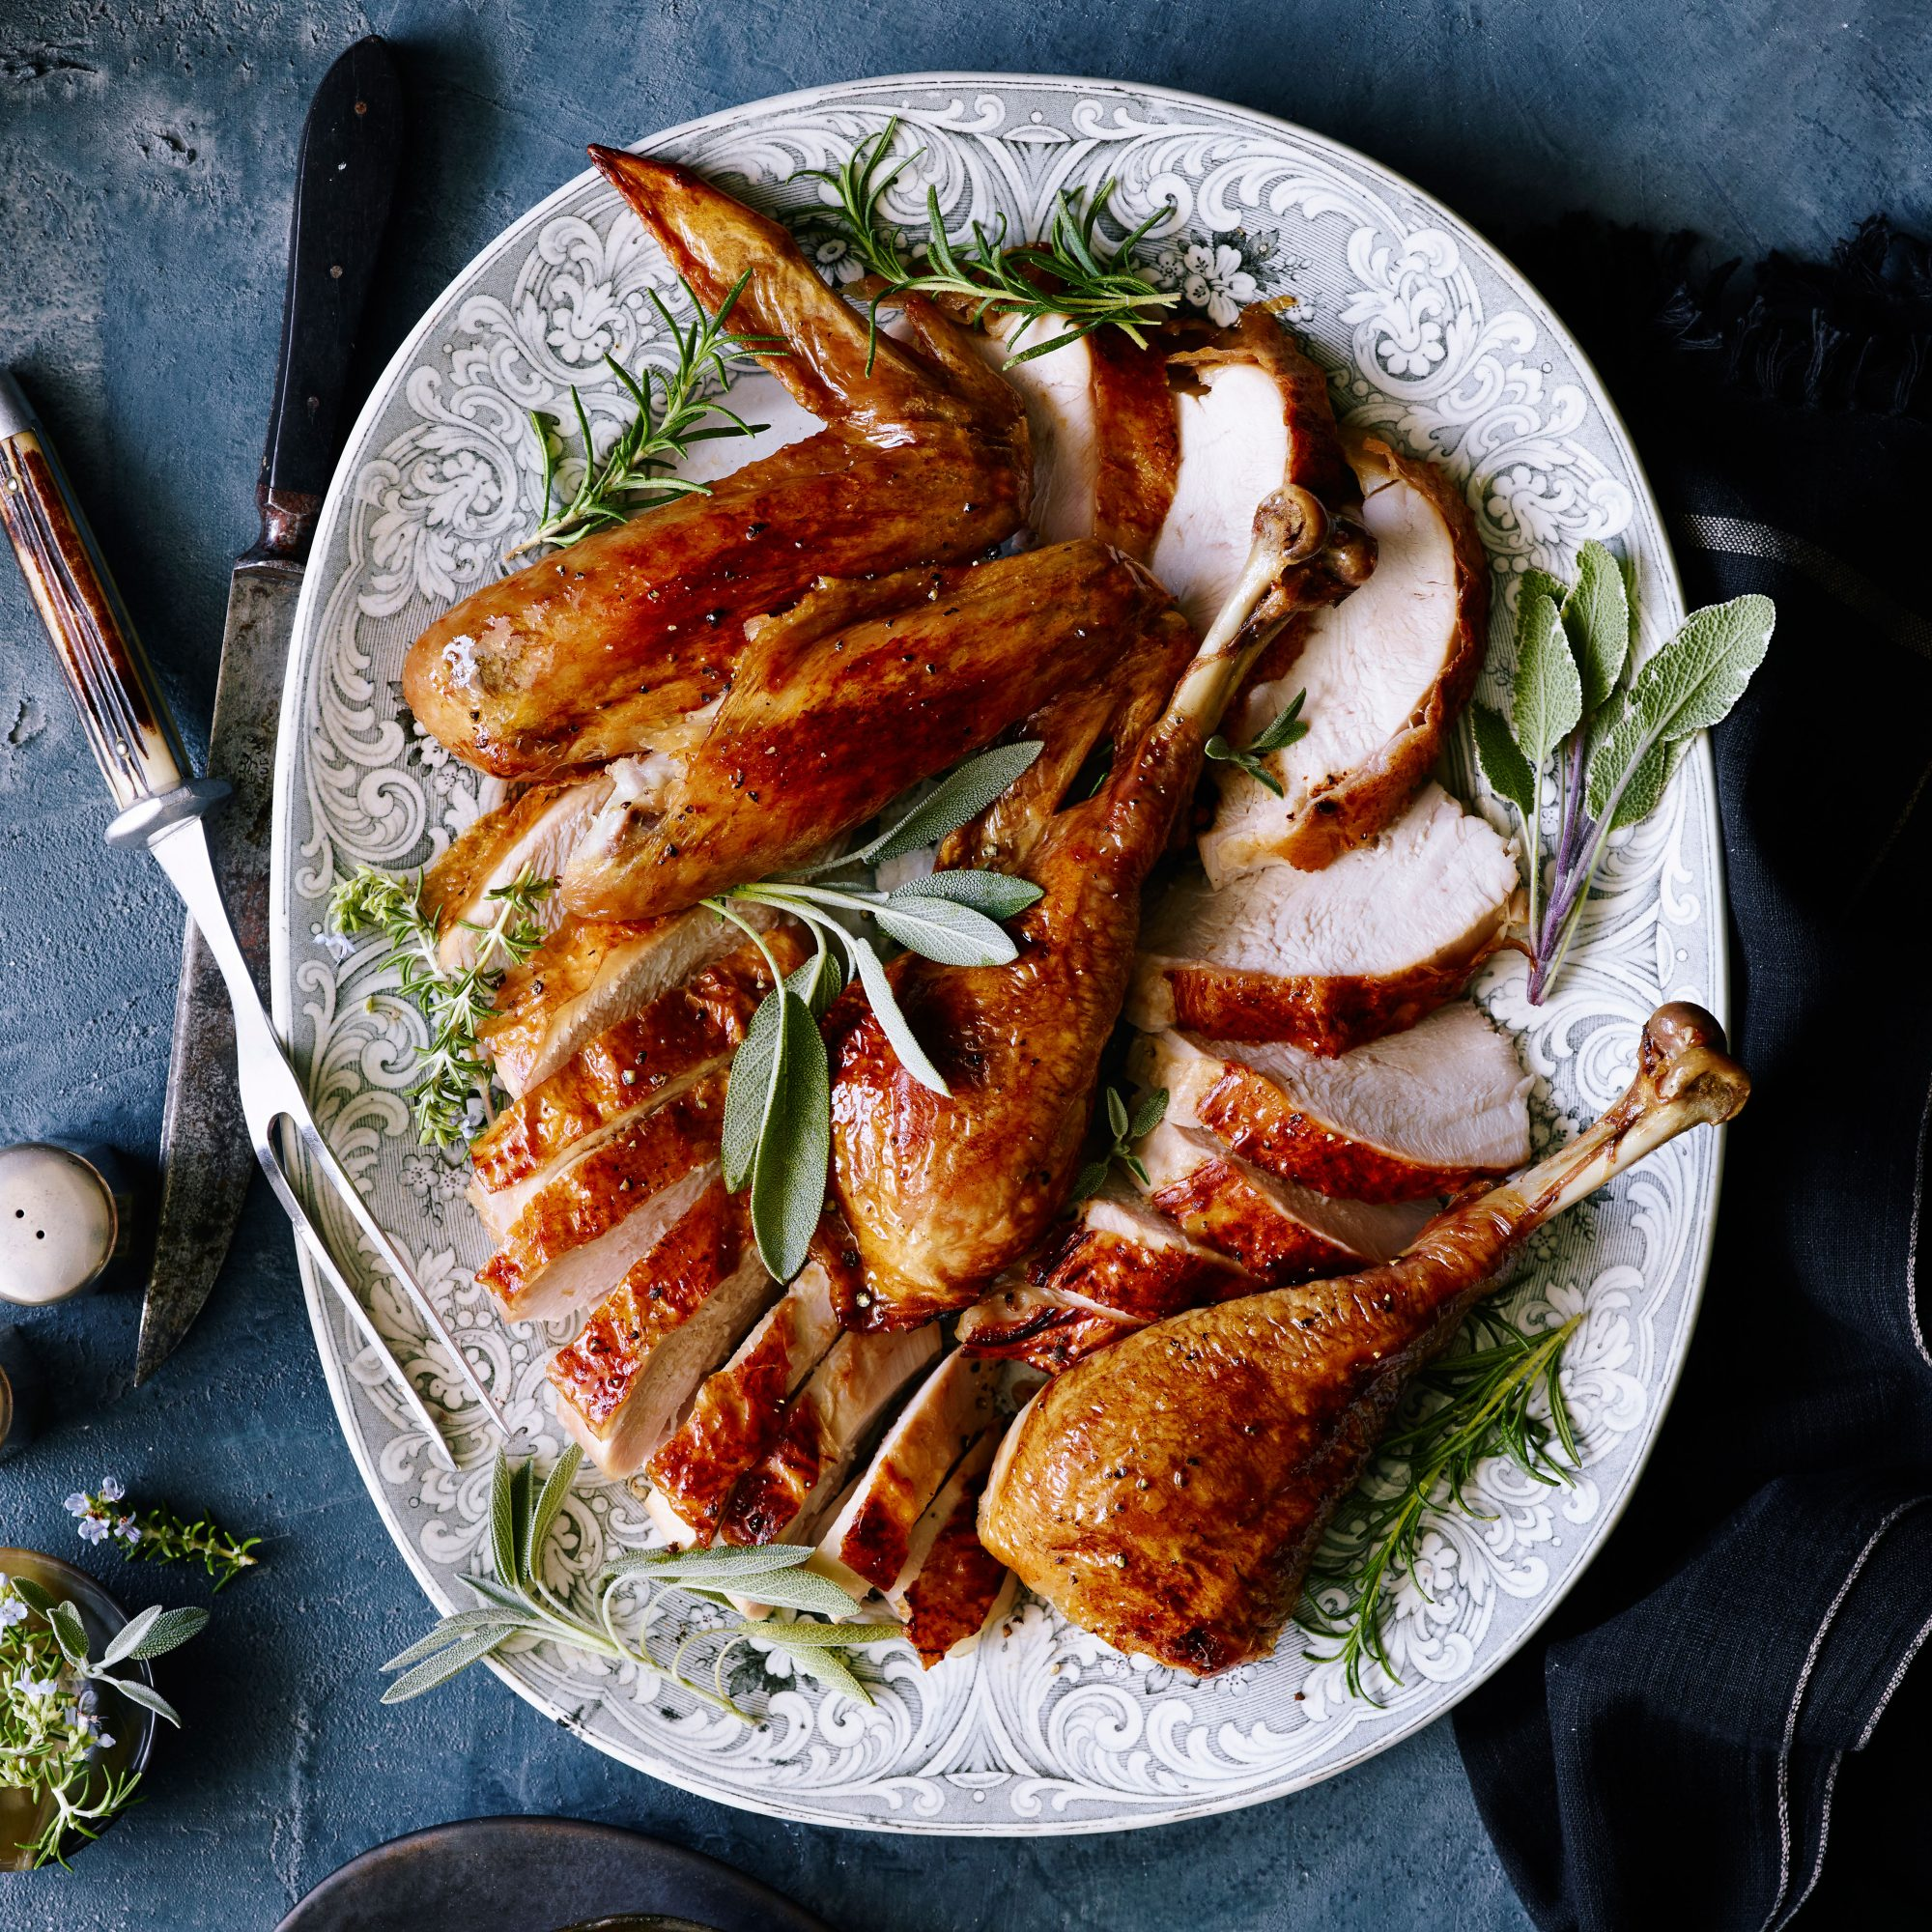 Grilled Butterflied Turkey